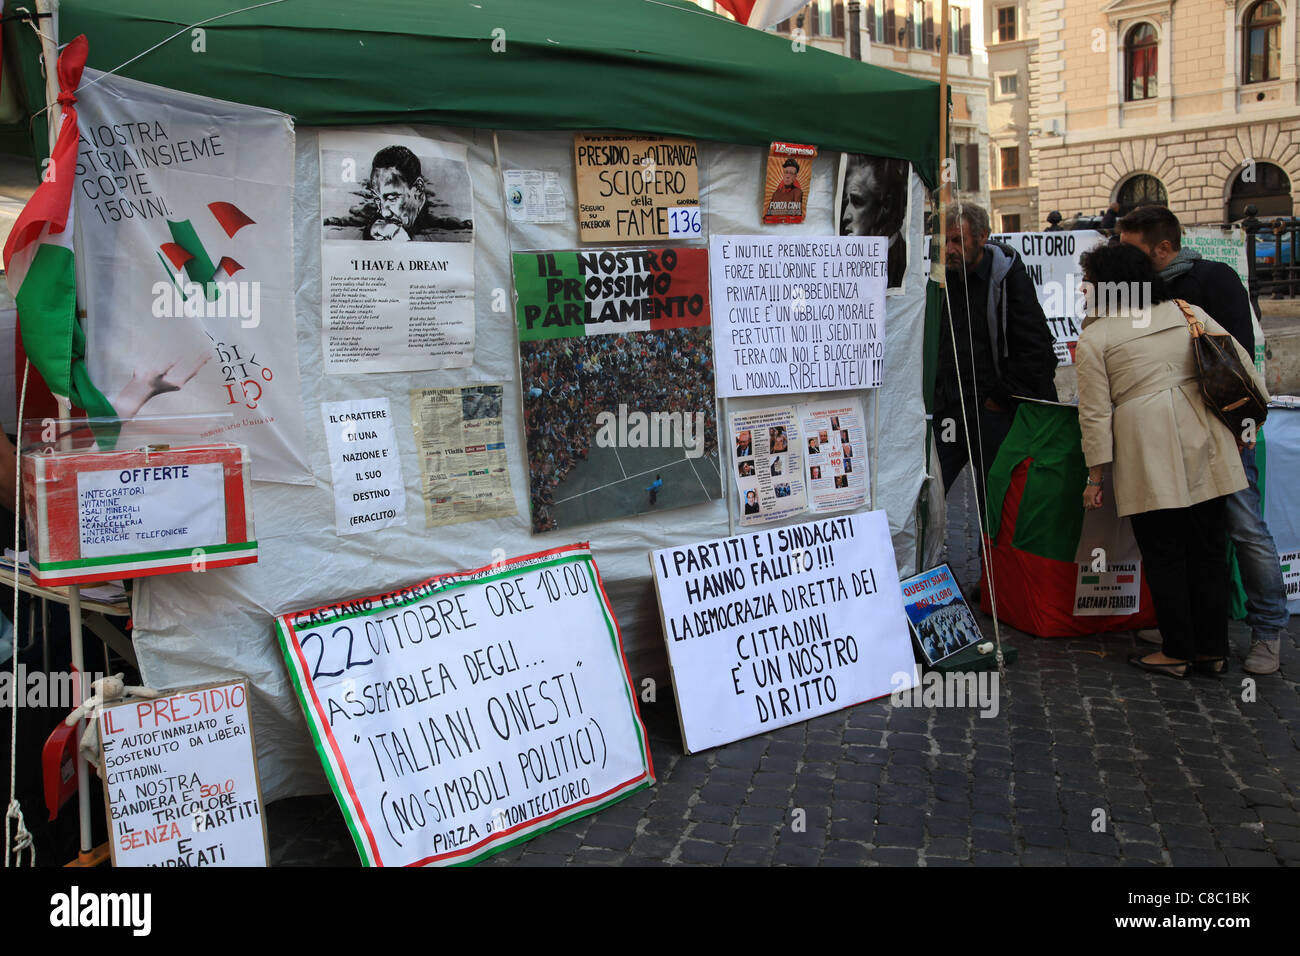 Hunger strikers' tent in front of the Italian Parliament, Rome - Stock Image